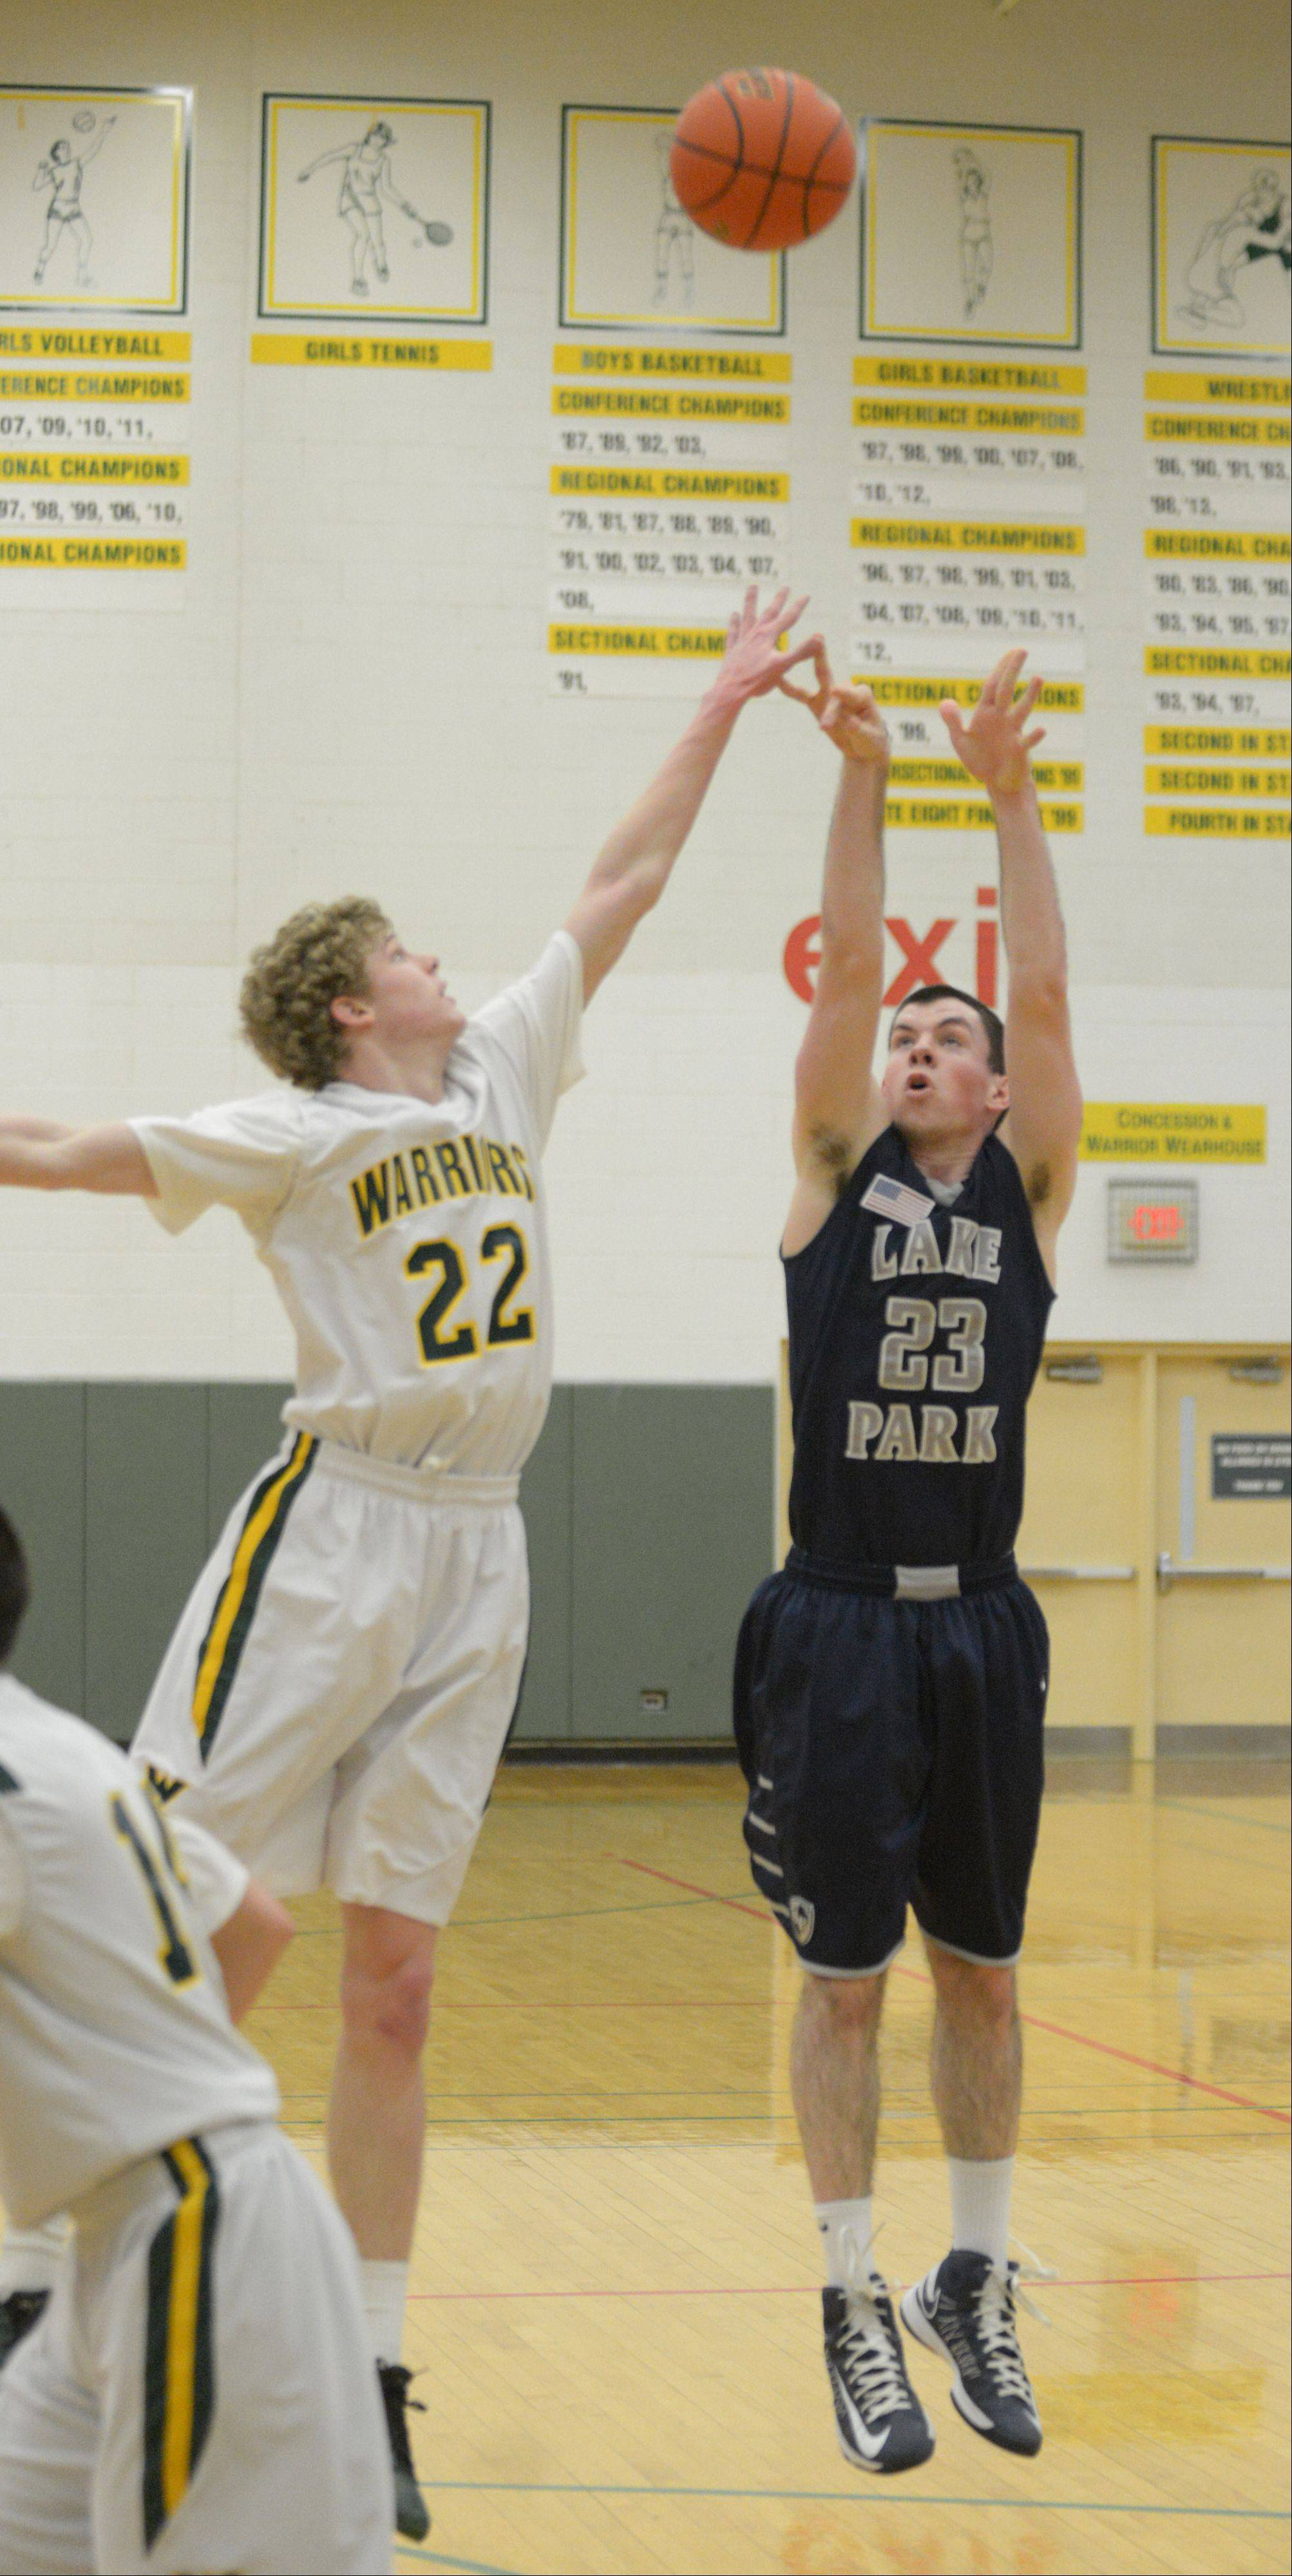 Jack Cordes of Waubonsie, left, attempts to block a shot by Sean Moore of Lake Park during the Lake Park at Waubonsie Valley boys basketball game Friday.